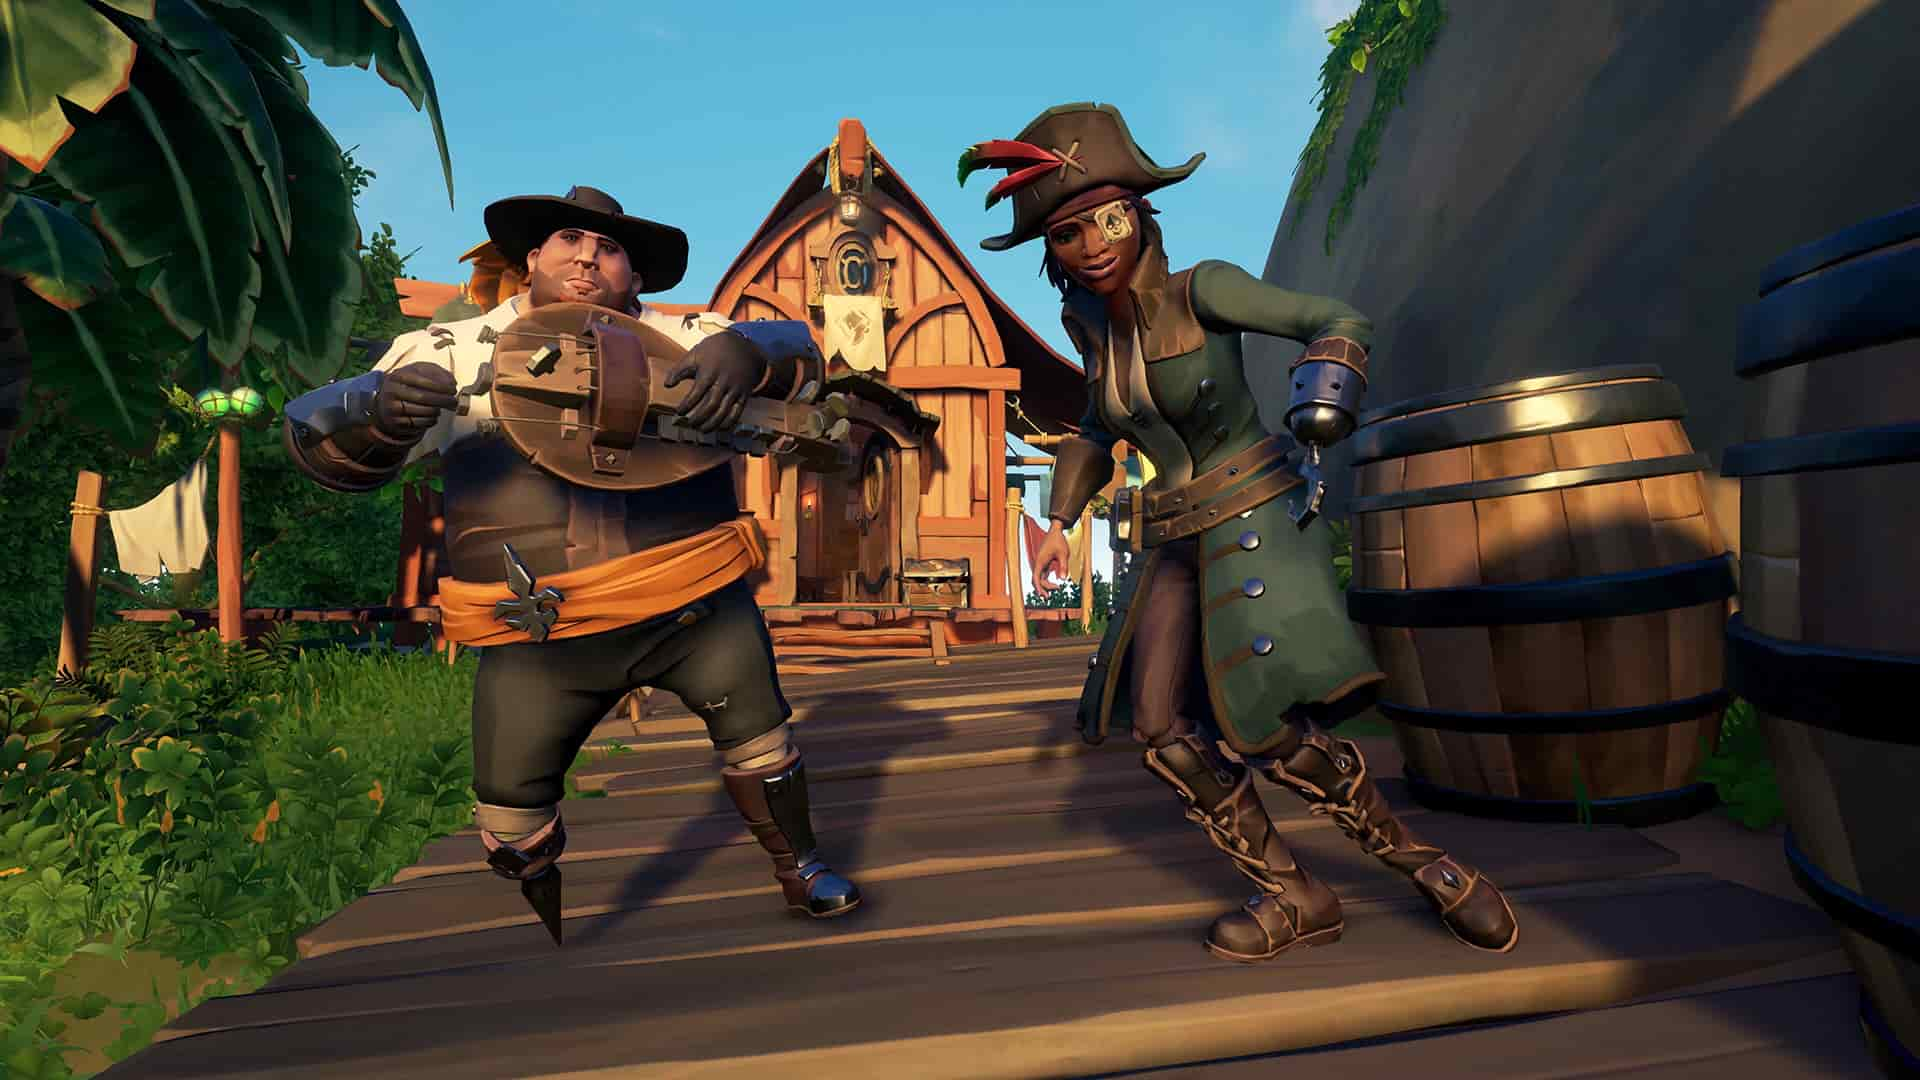 Sea of Thieves Player Count Totaled 2 Million in First Month